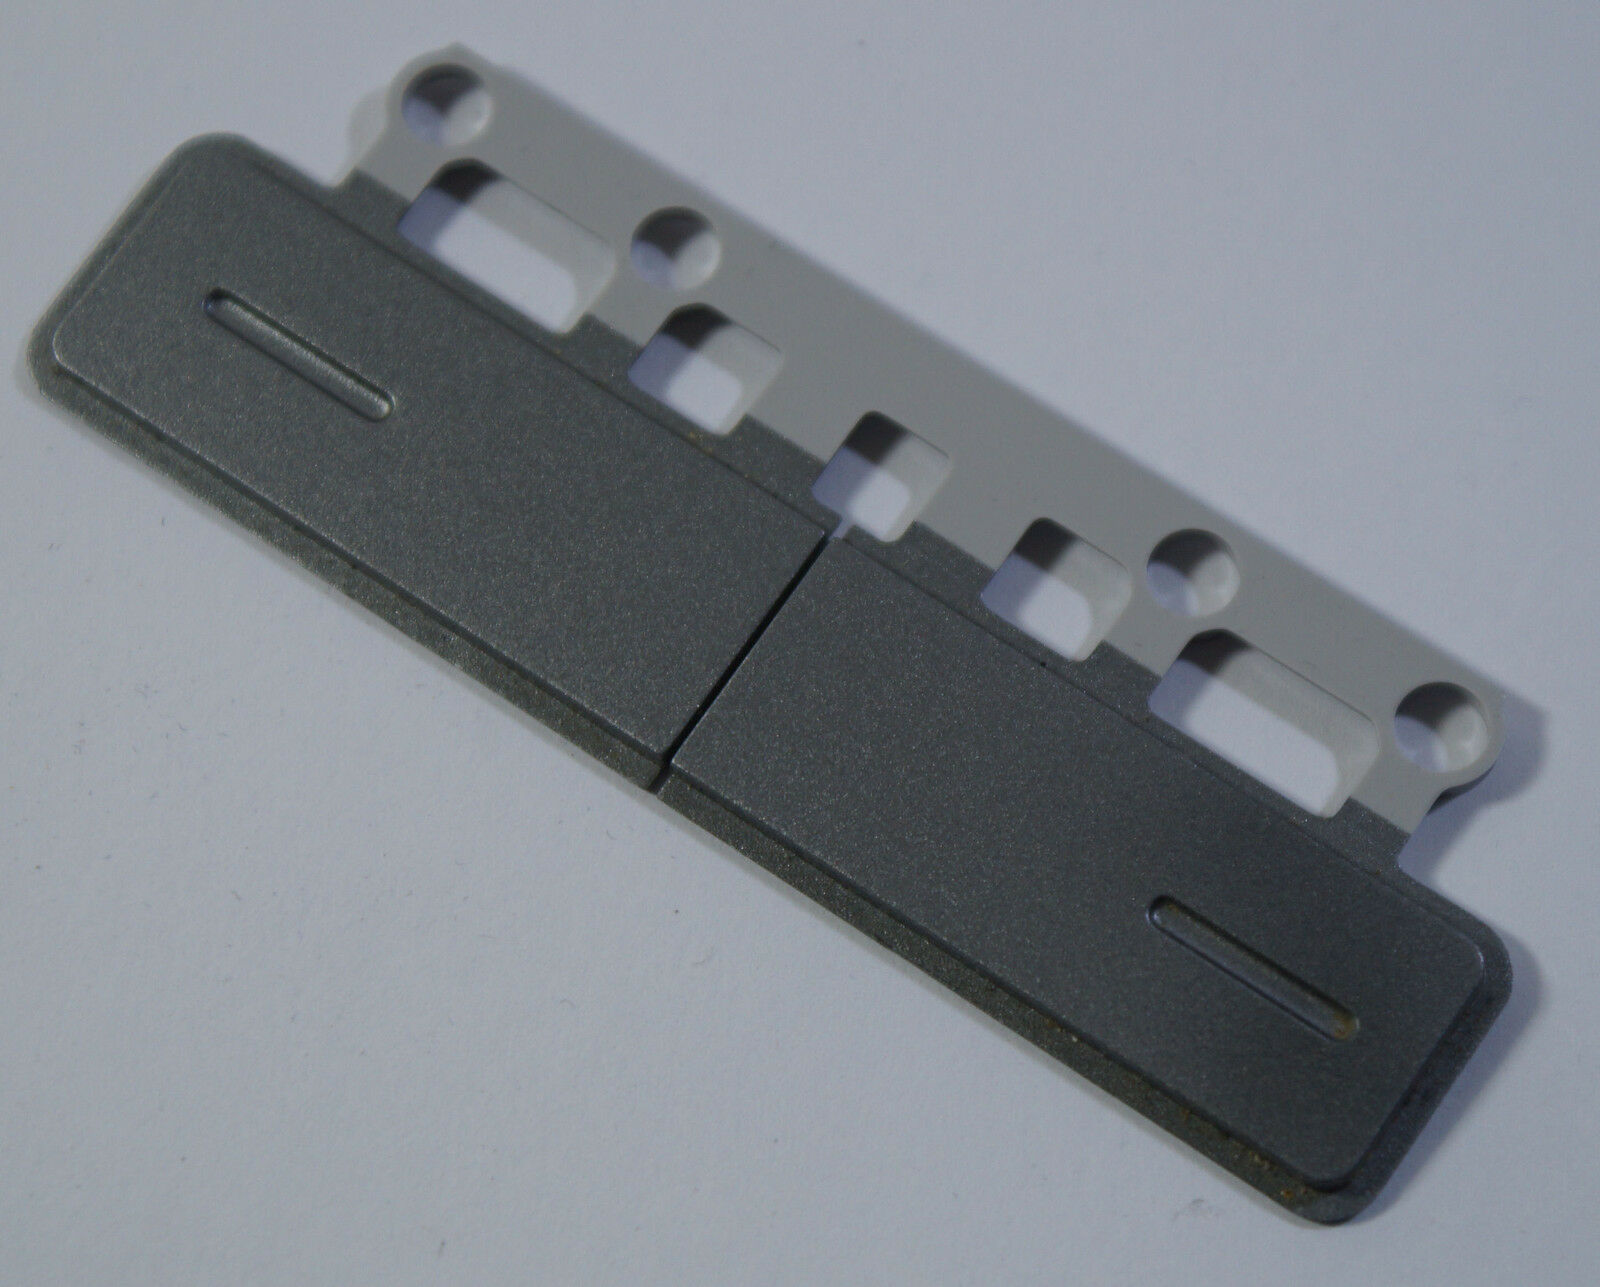 Mouse Buttons Cover Bezel for Laptop Fujitsu Amilo Xi2528 Top!